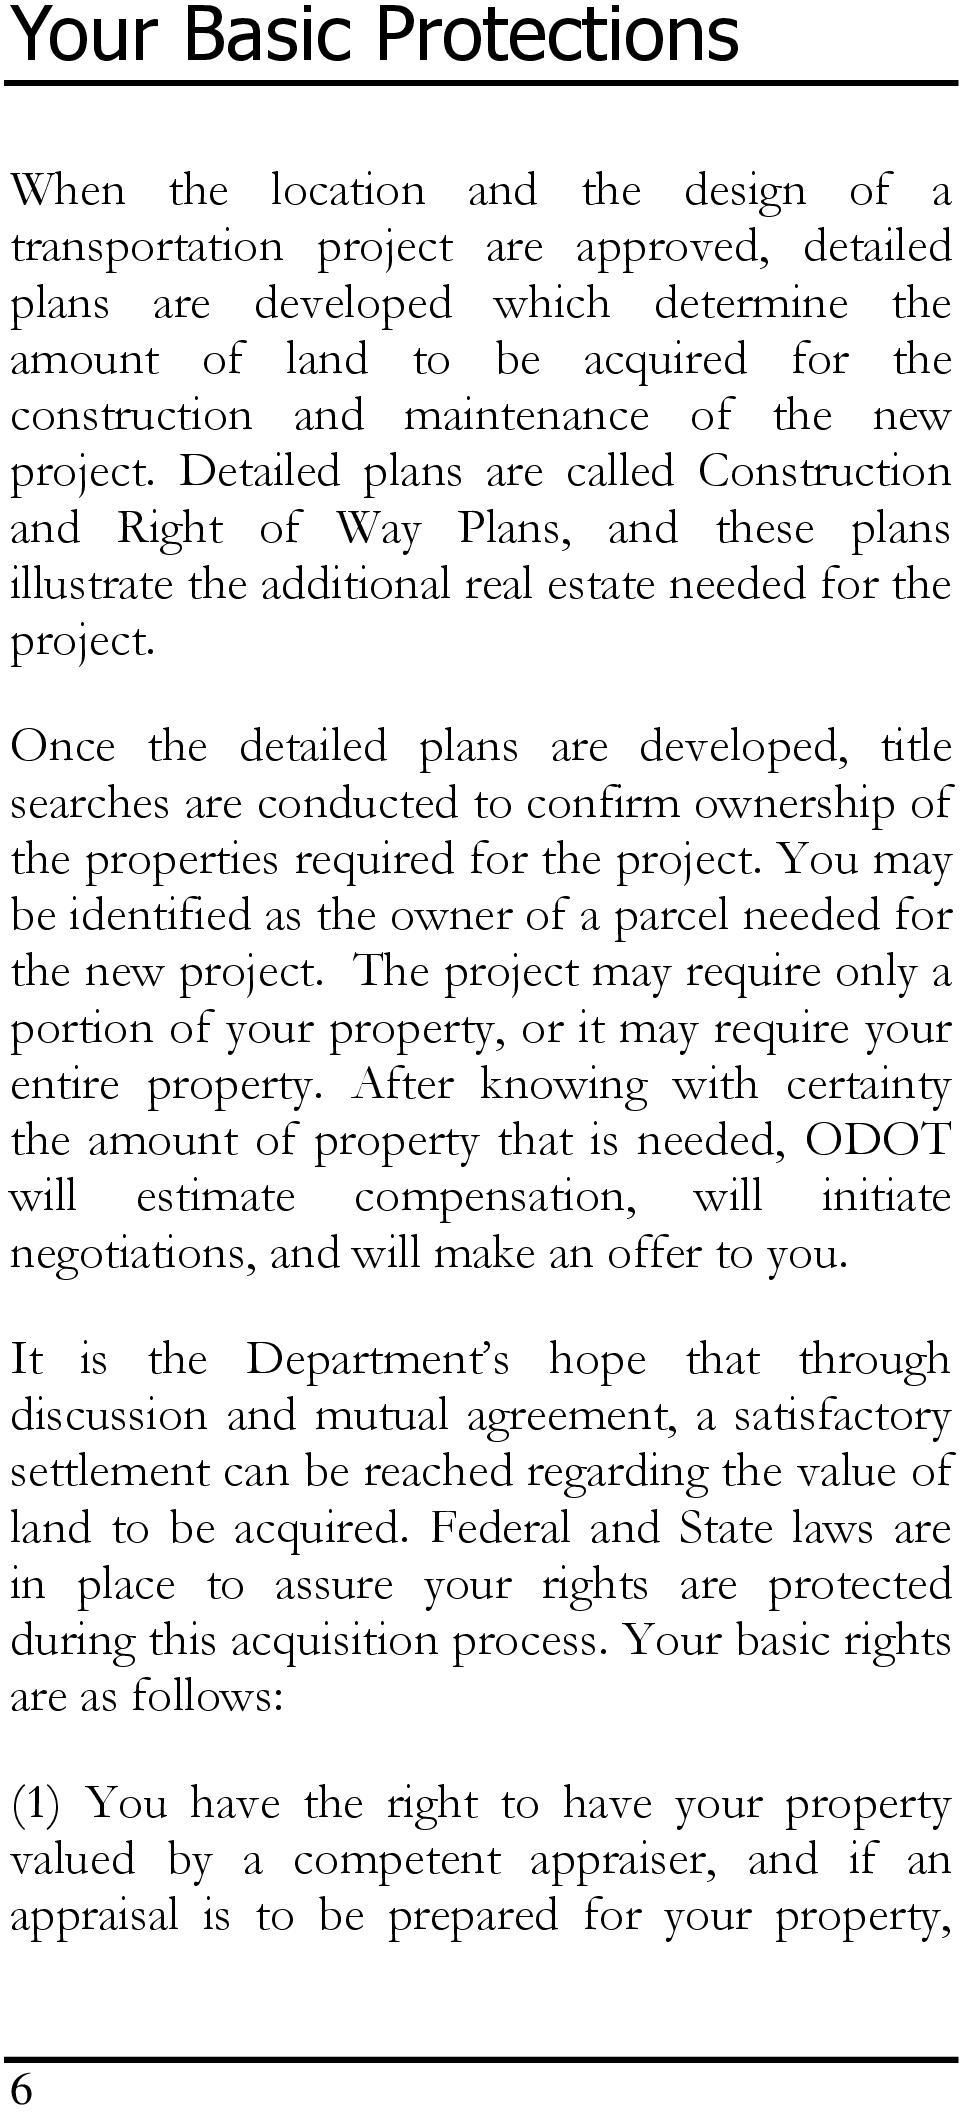 Once the detailed plans are developed, title searches are conducted to confirm ownership of the properties required for the project.